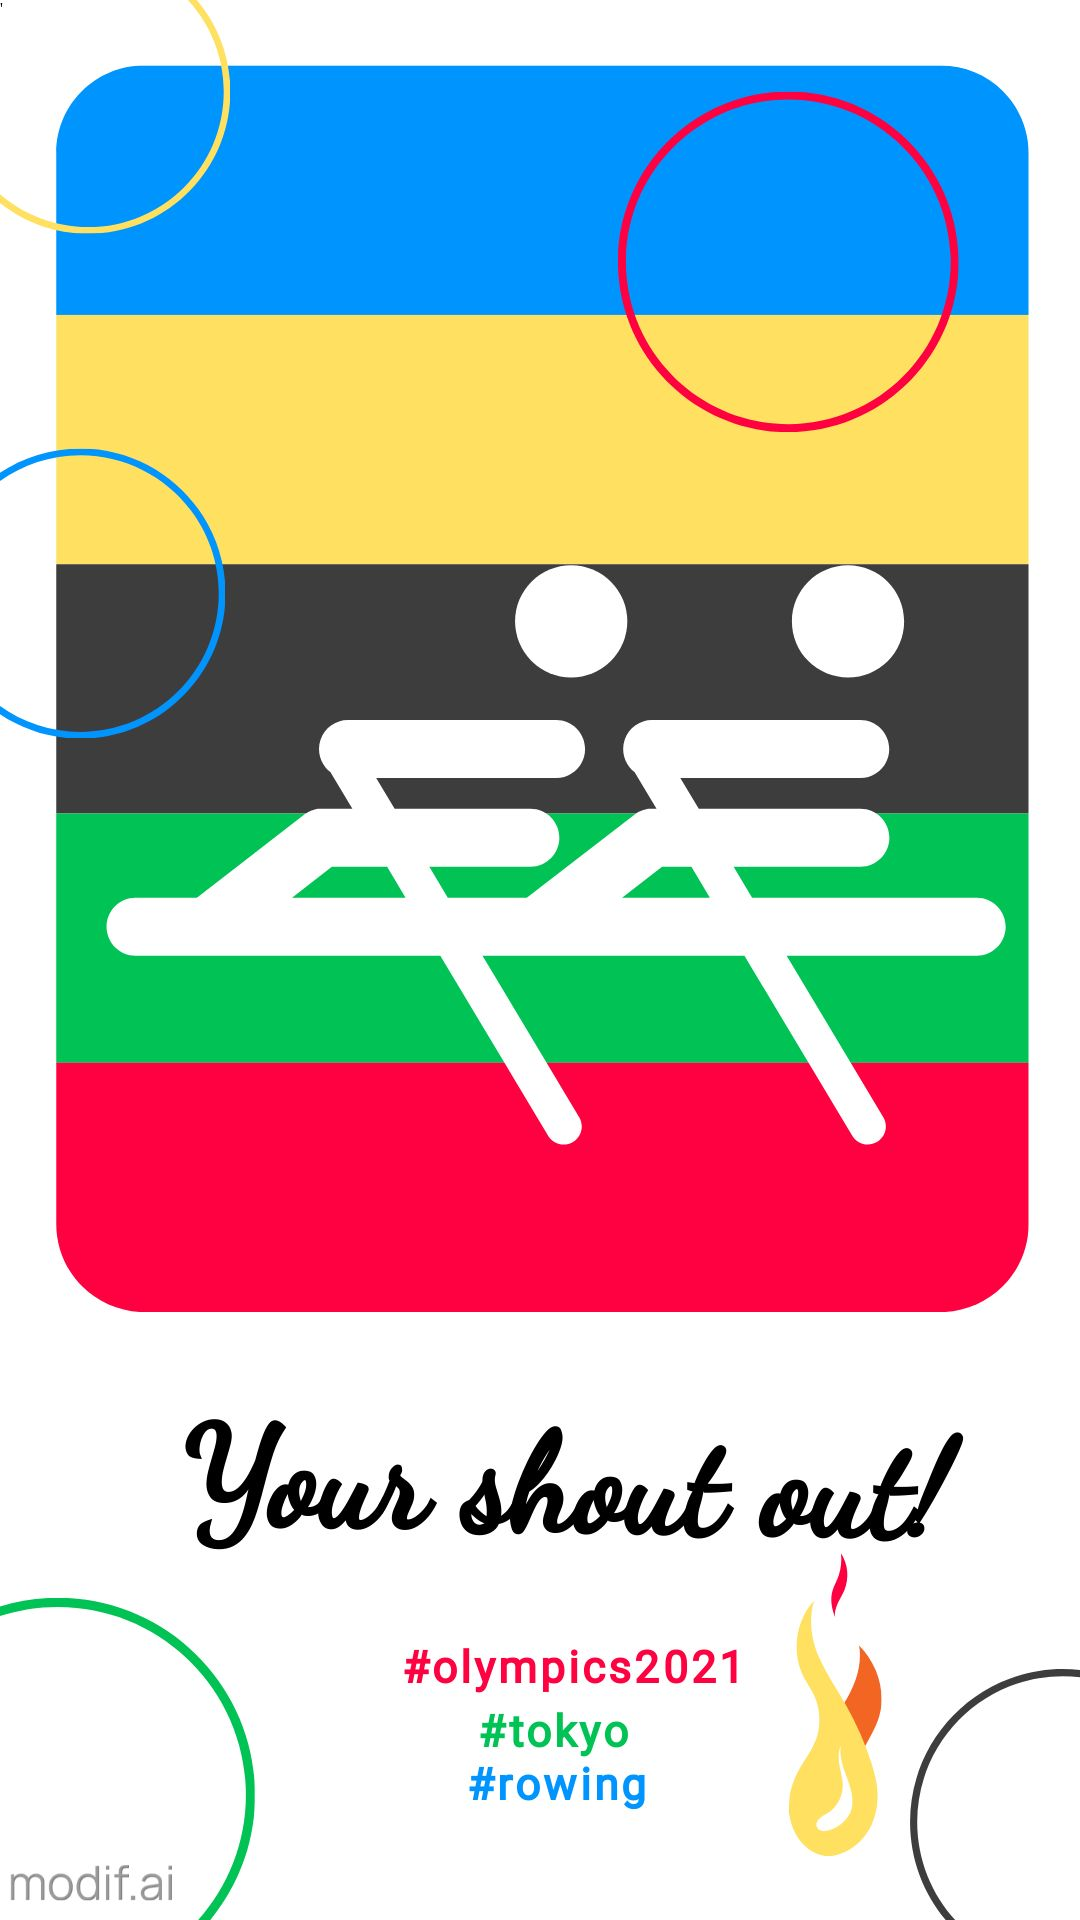 Rowing Pictogram Olympic Instagram Story Post Template